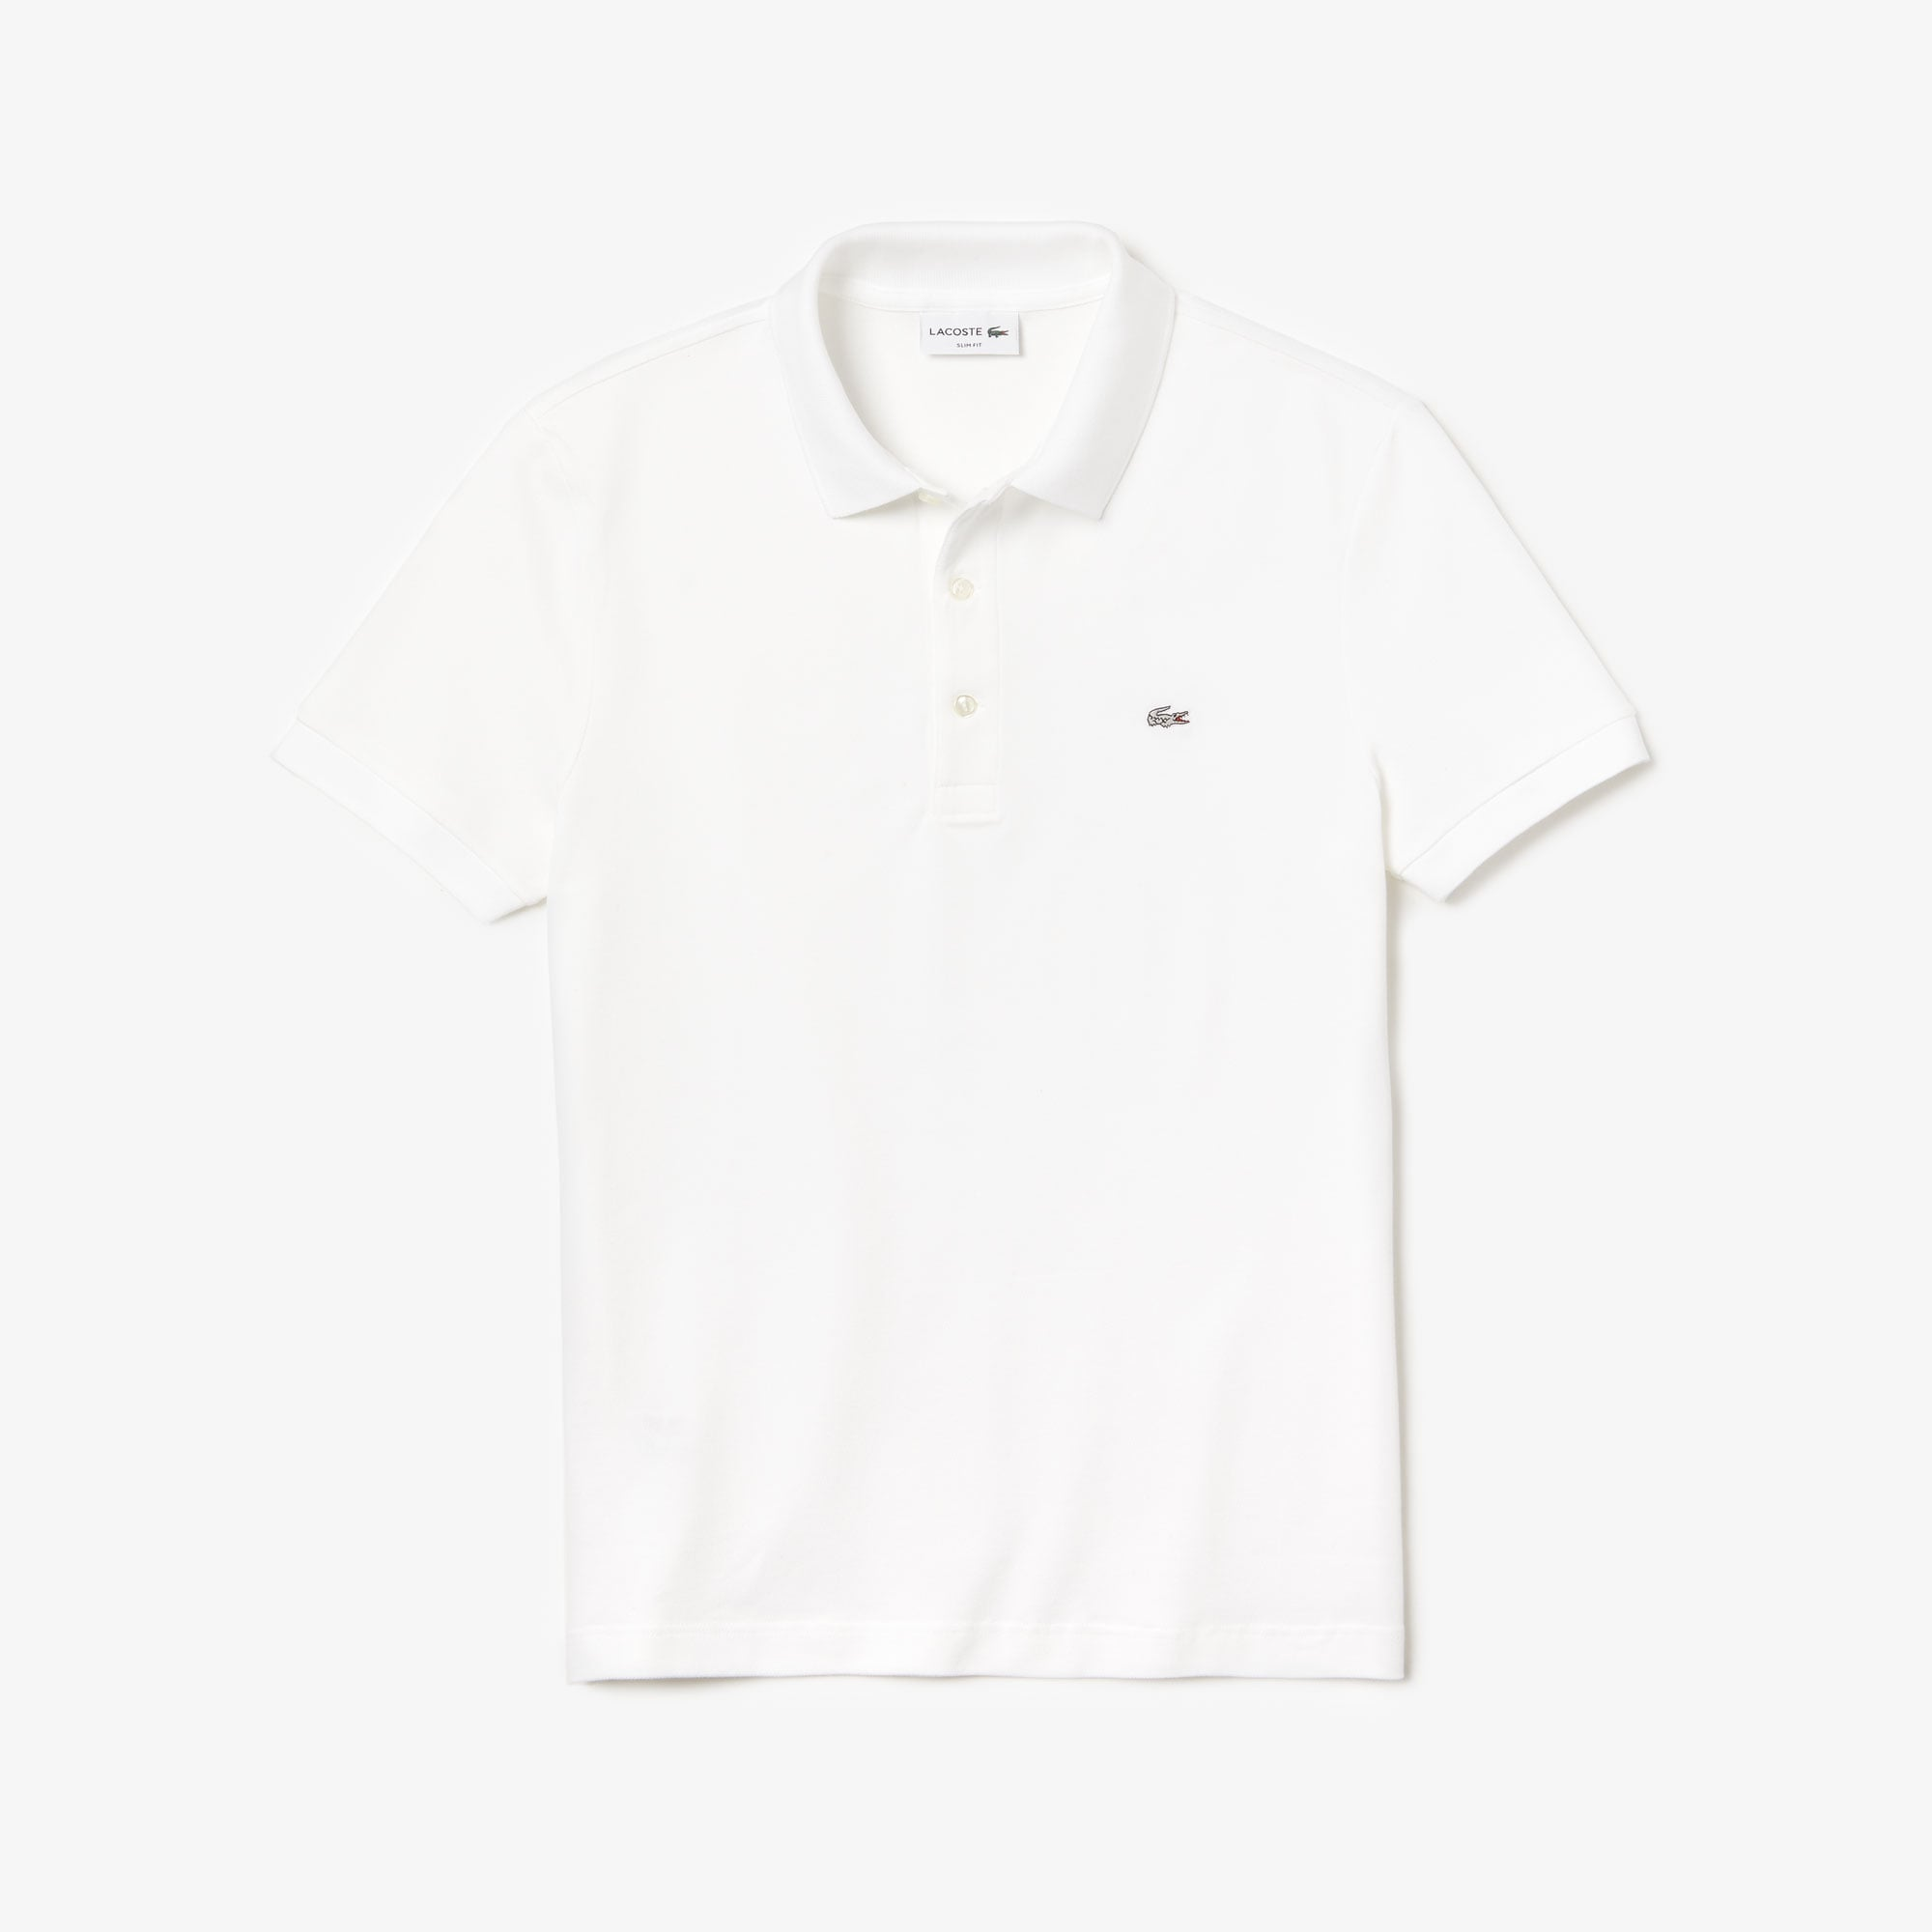 new style 6ef07 cb01d Lacoste Polo Shirt Outlet | RLDM